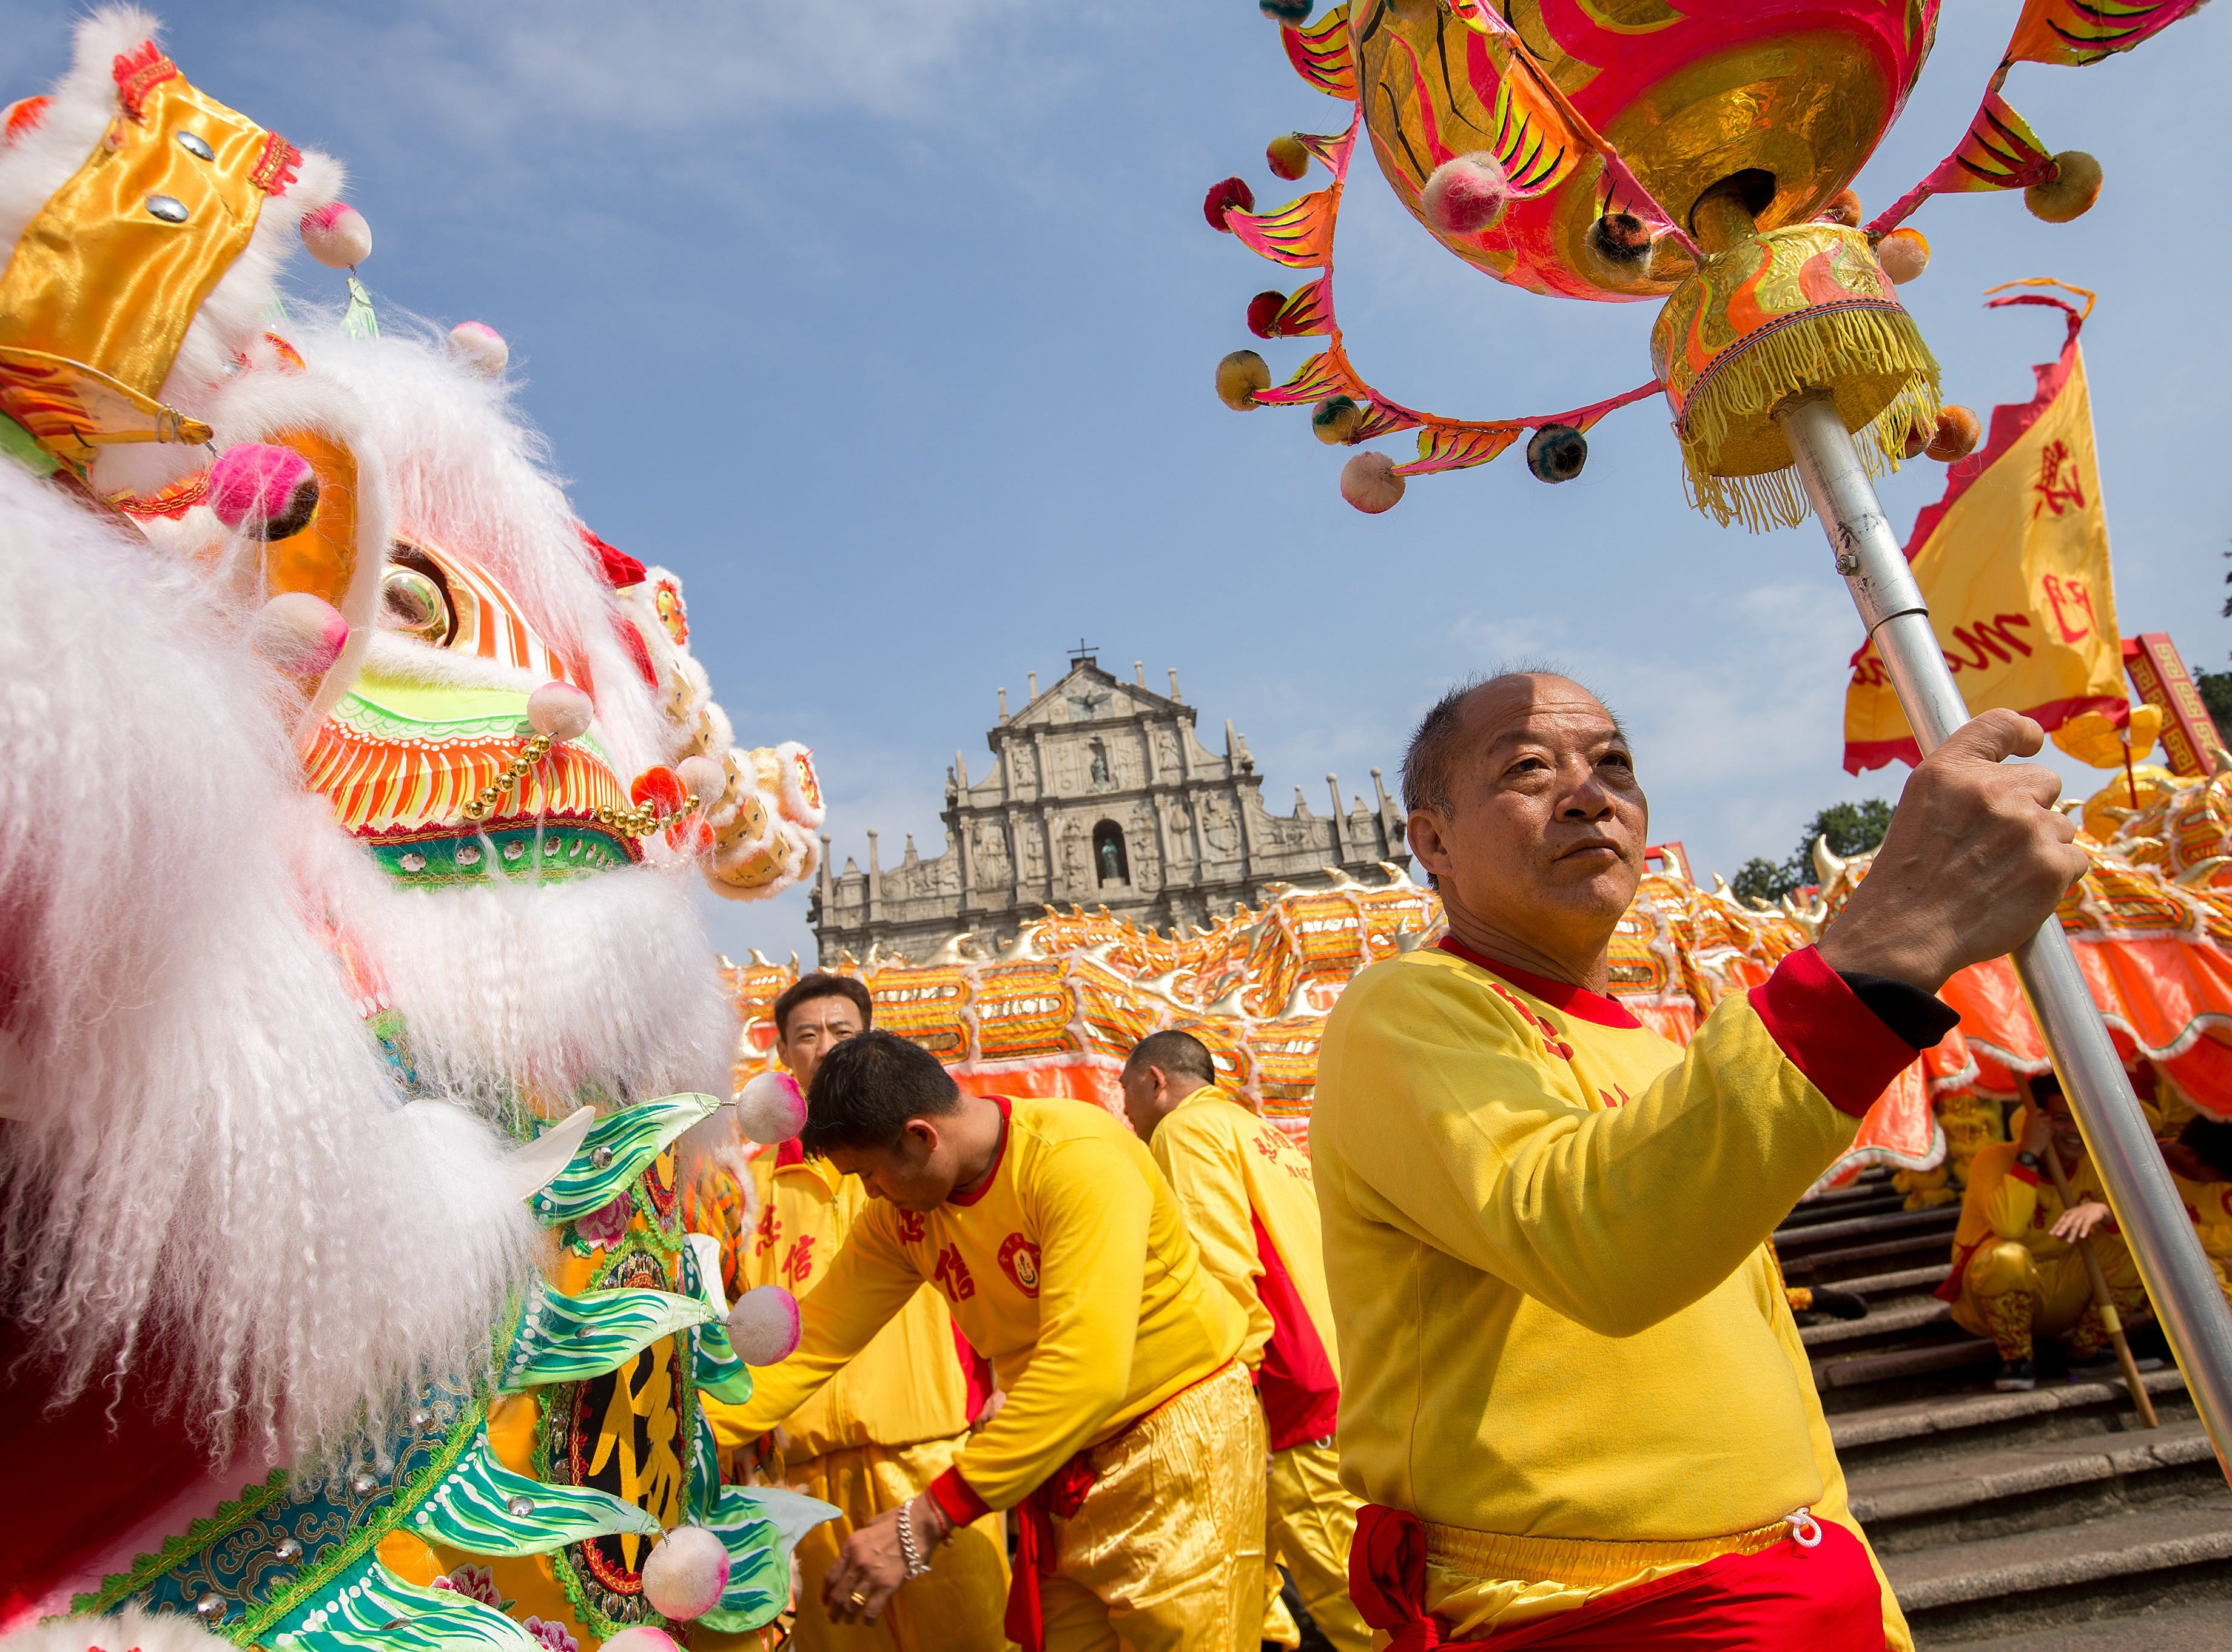 epa06531879 A group of dancers perform 'Liong' or dragon dance during the Chinese Lunar New Year celebrations at a temple in Macao, China, 16 February 2018. The Chinese New Year, the Year of the Dog, begins on 16 February 2018 and ends on 04 February 2019.  EPA-EFE/CARMO CORREIRA ORG XMIT: CC